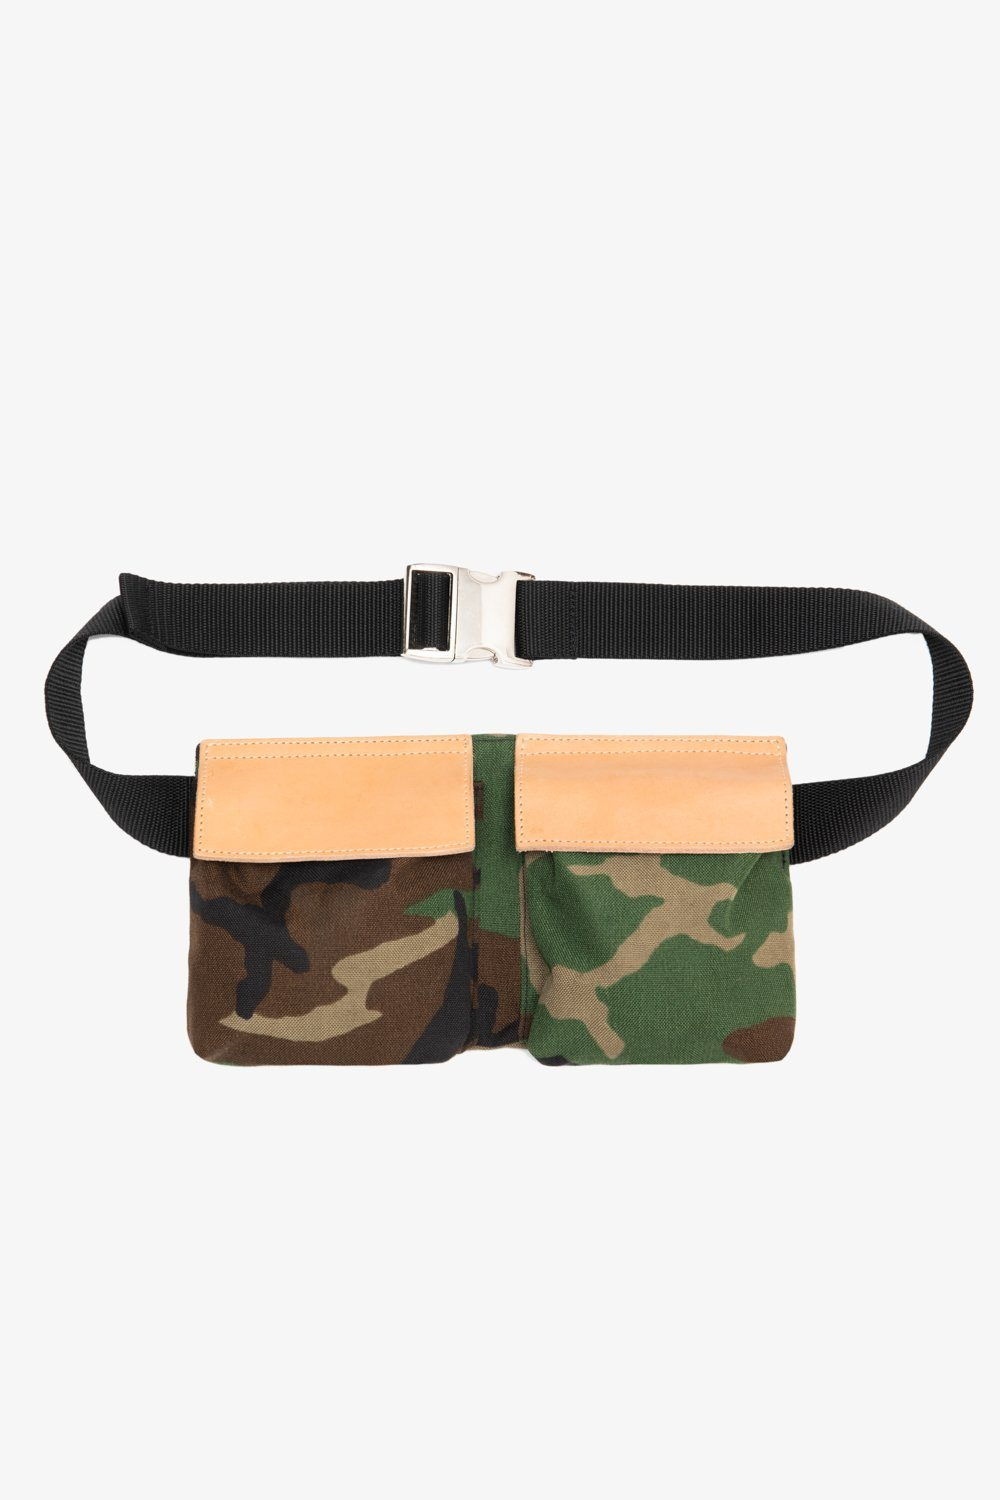 Billie Belt Bag - Gray Jack + Mulligan Camo